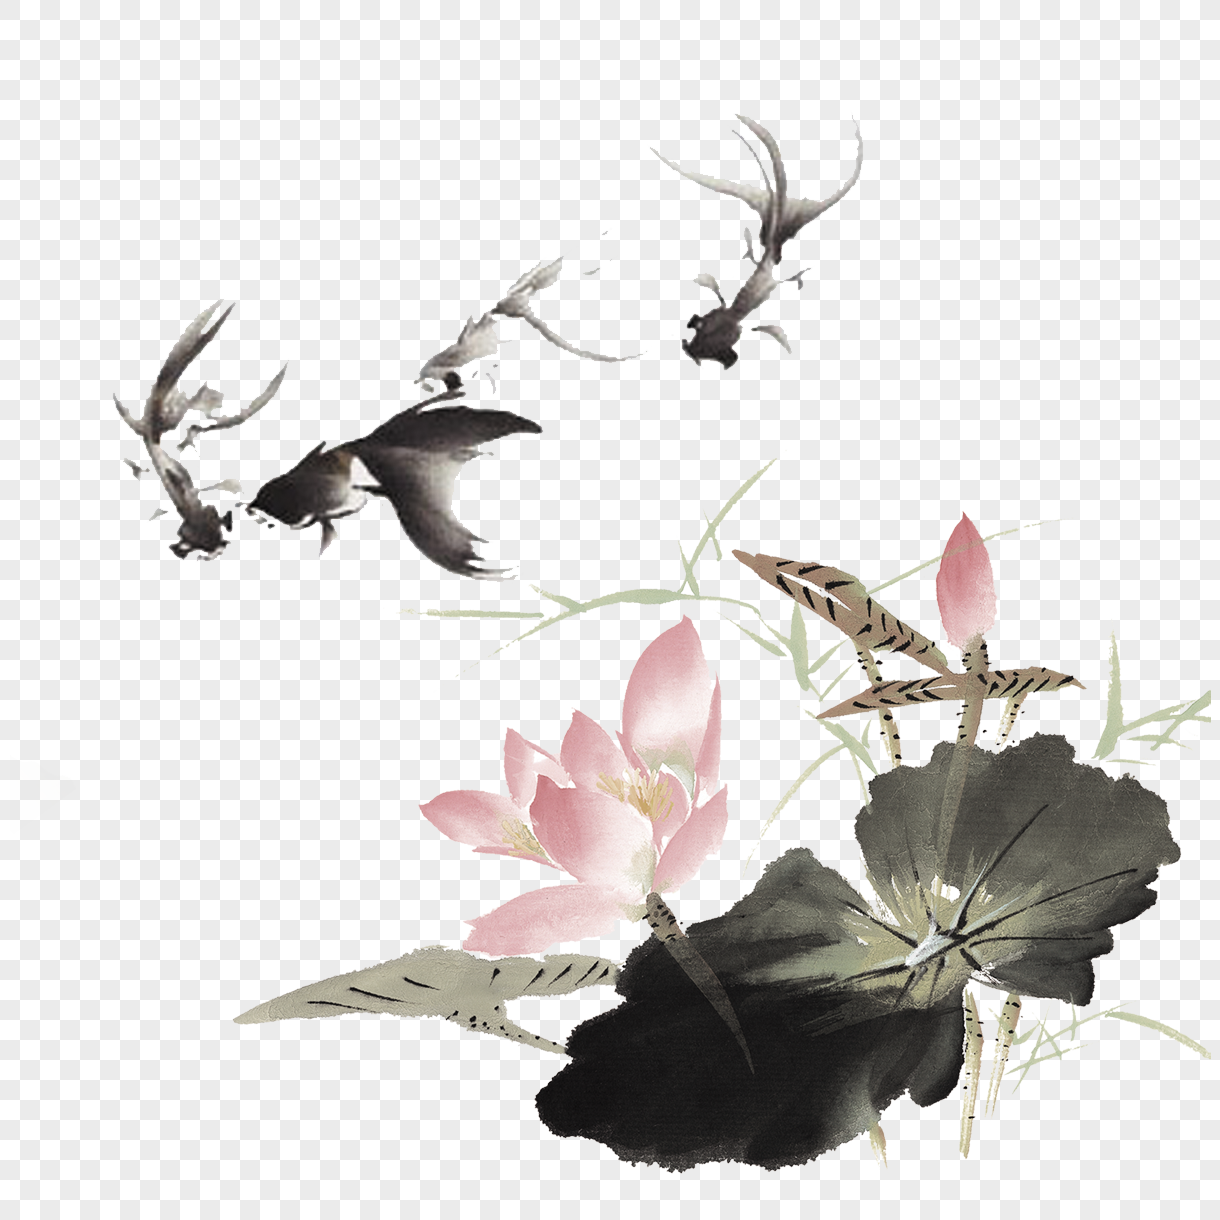 Chinese Feng Shui Ink Lotus Png Imagepicture Free Download